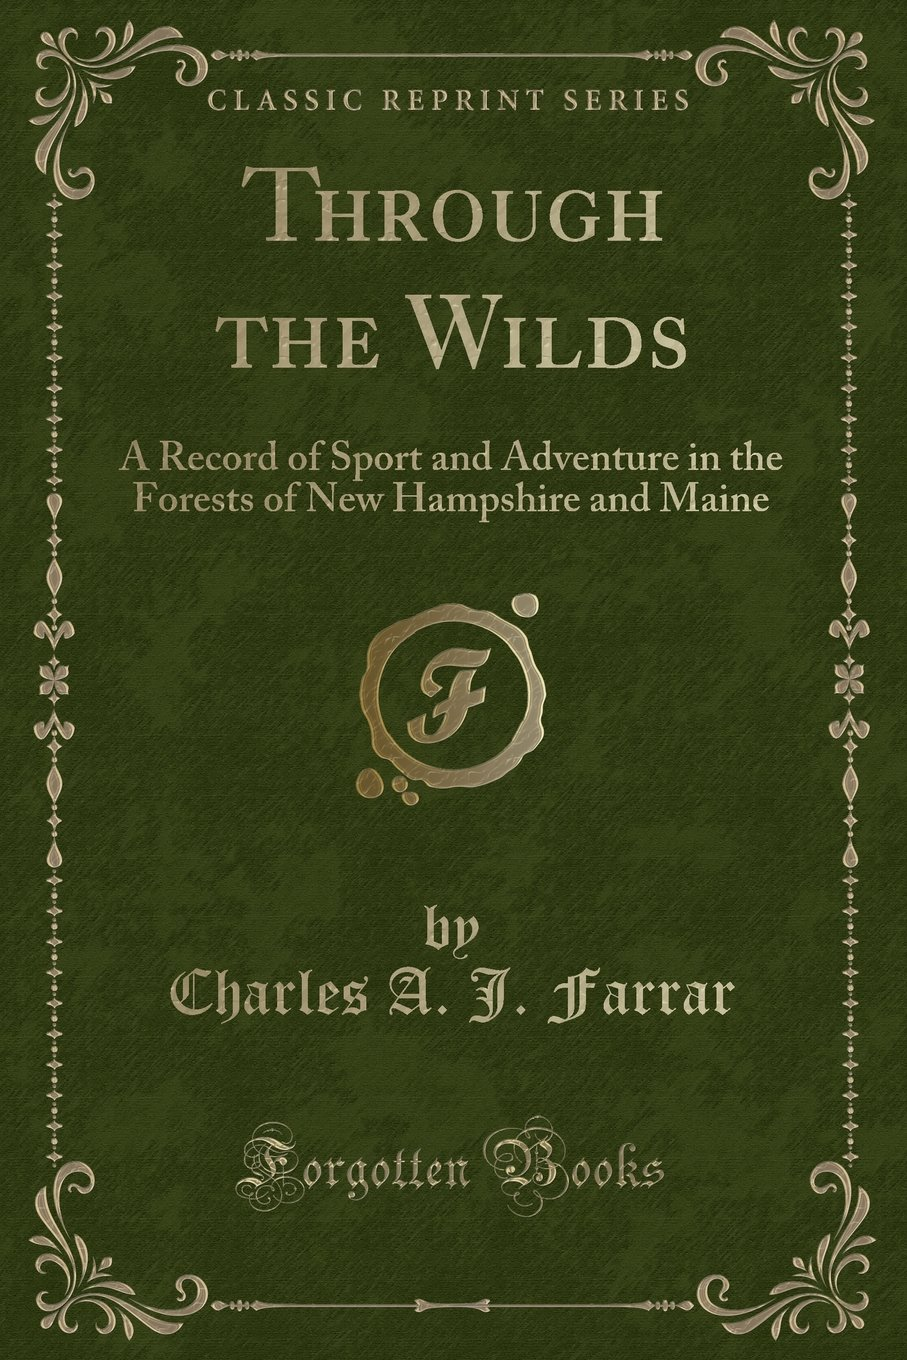 Through the Wilds: A Record of Sport and Adventure in the Forests of New Hampshire and Maine (Classic Reprint) ebook